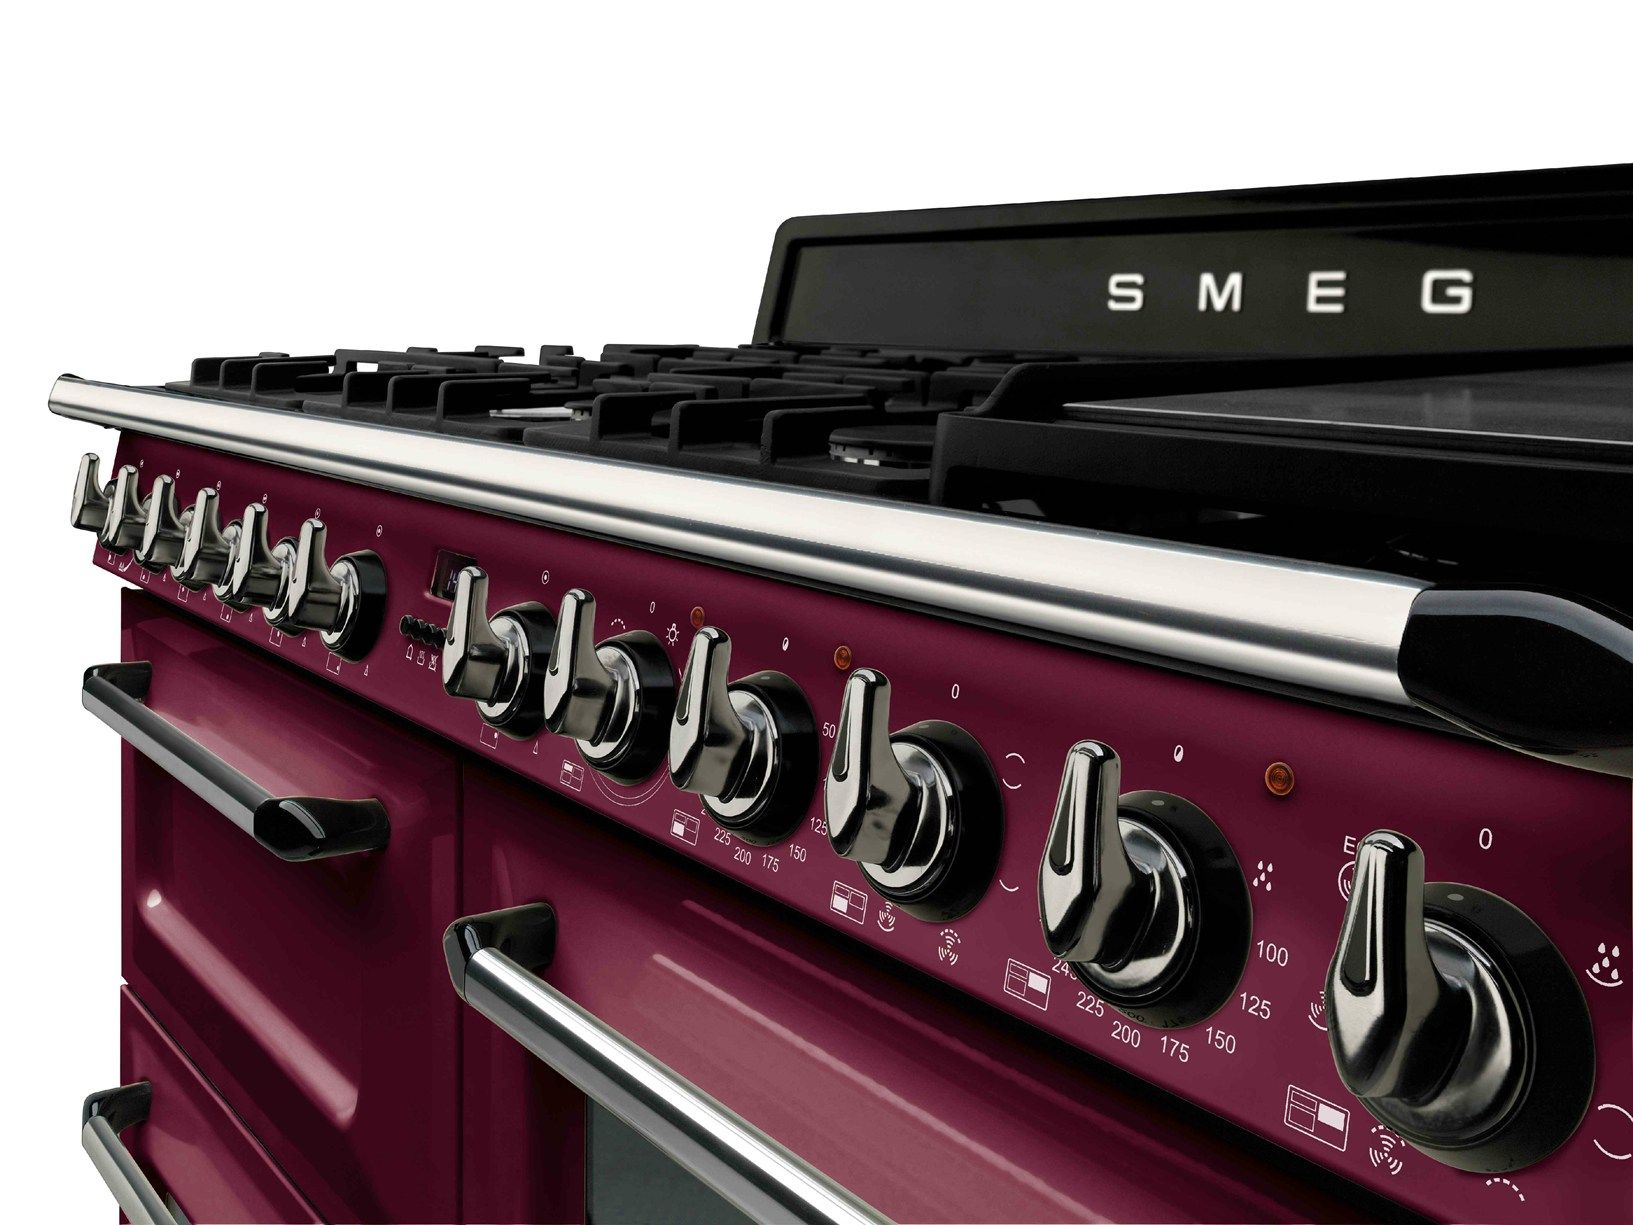 Cucine A Gas Smeg Prezzi. Cucine A Gas Smeg Prezzi With Cucine A Gas ...